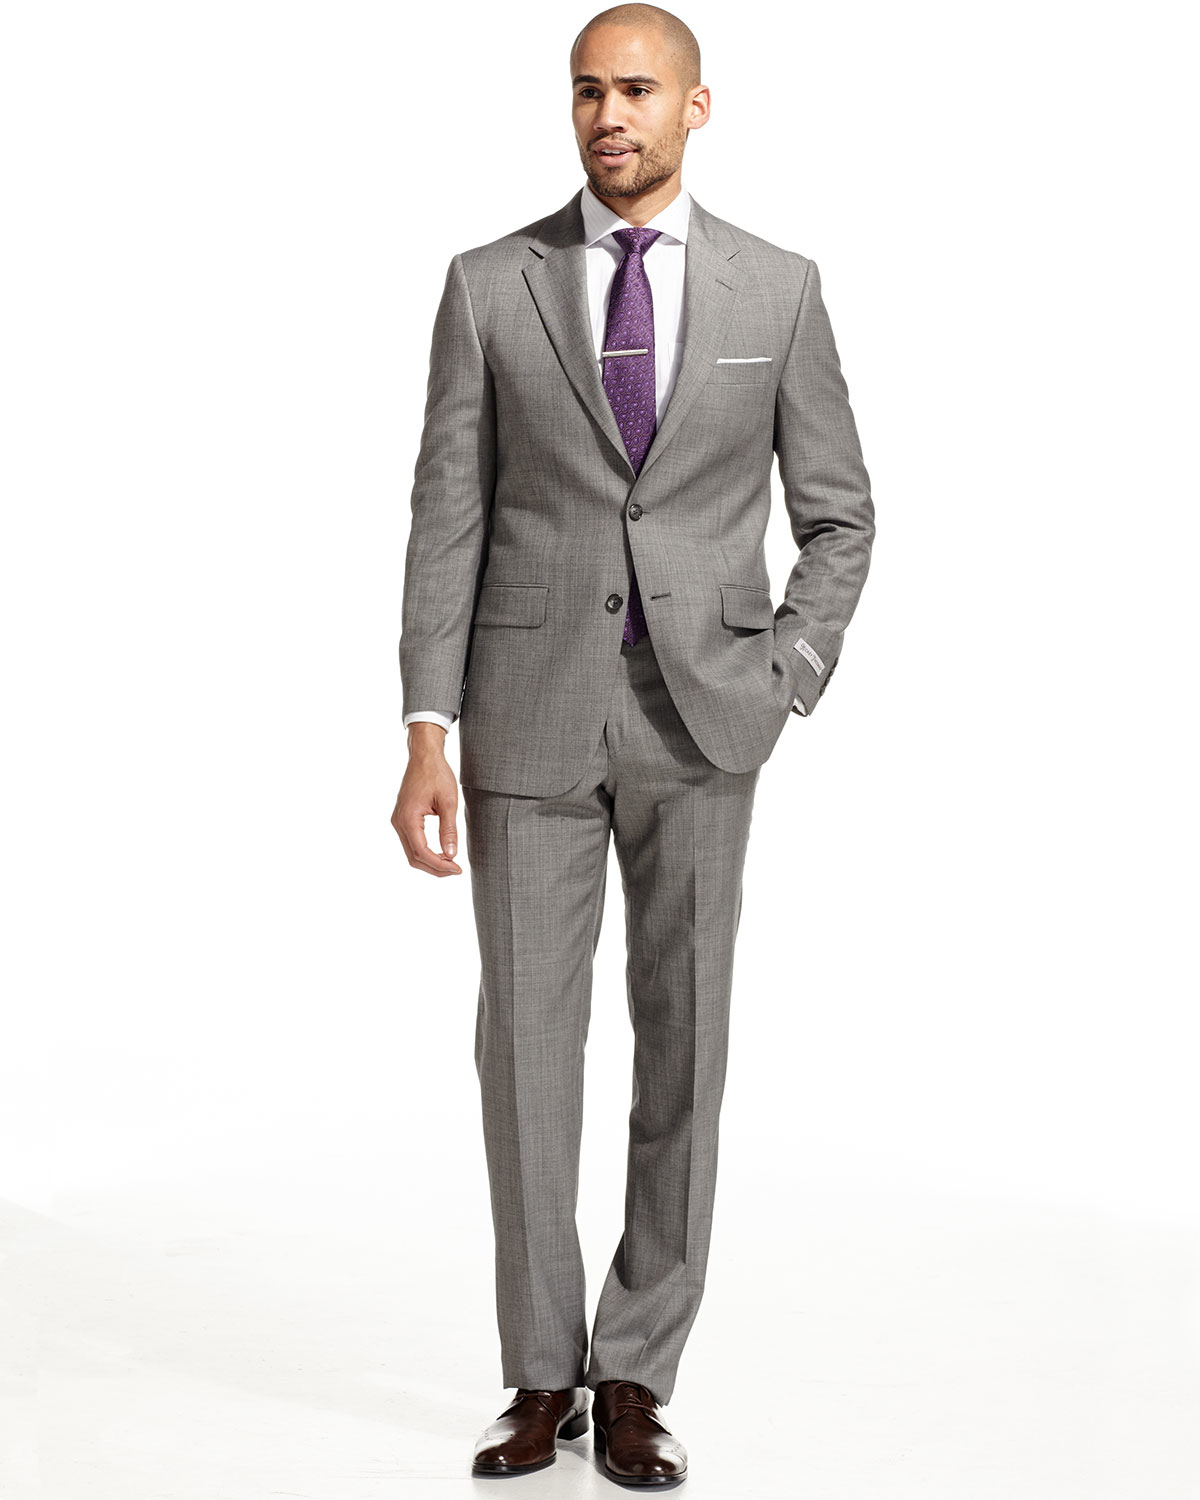 marcus men De marcus offers men's dress shirts & women's dress shirts and high-end fashion apparel, accessories, jewelry & style are a few things de marcus offers.